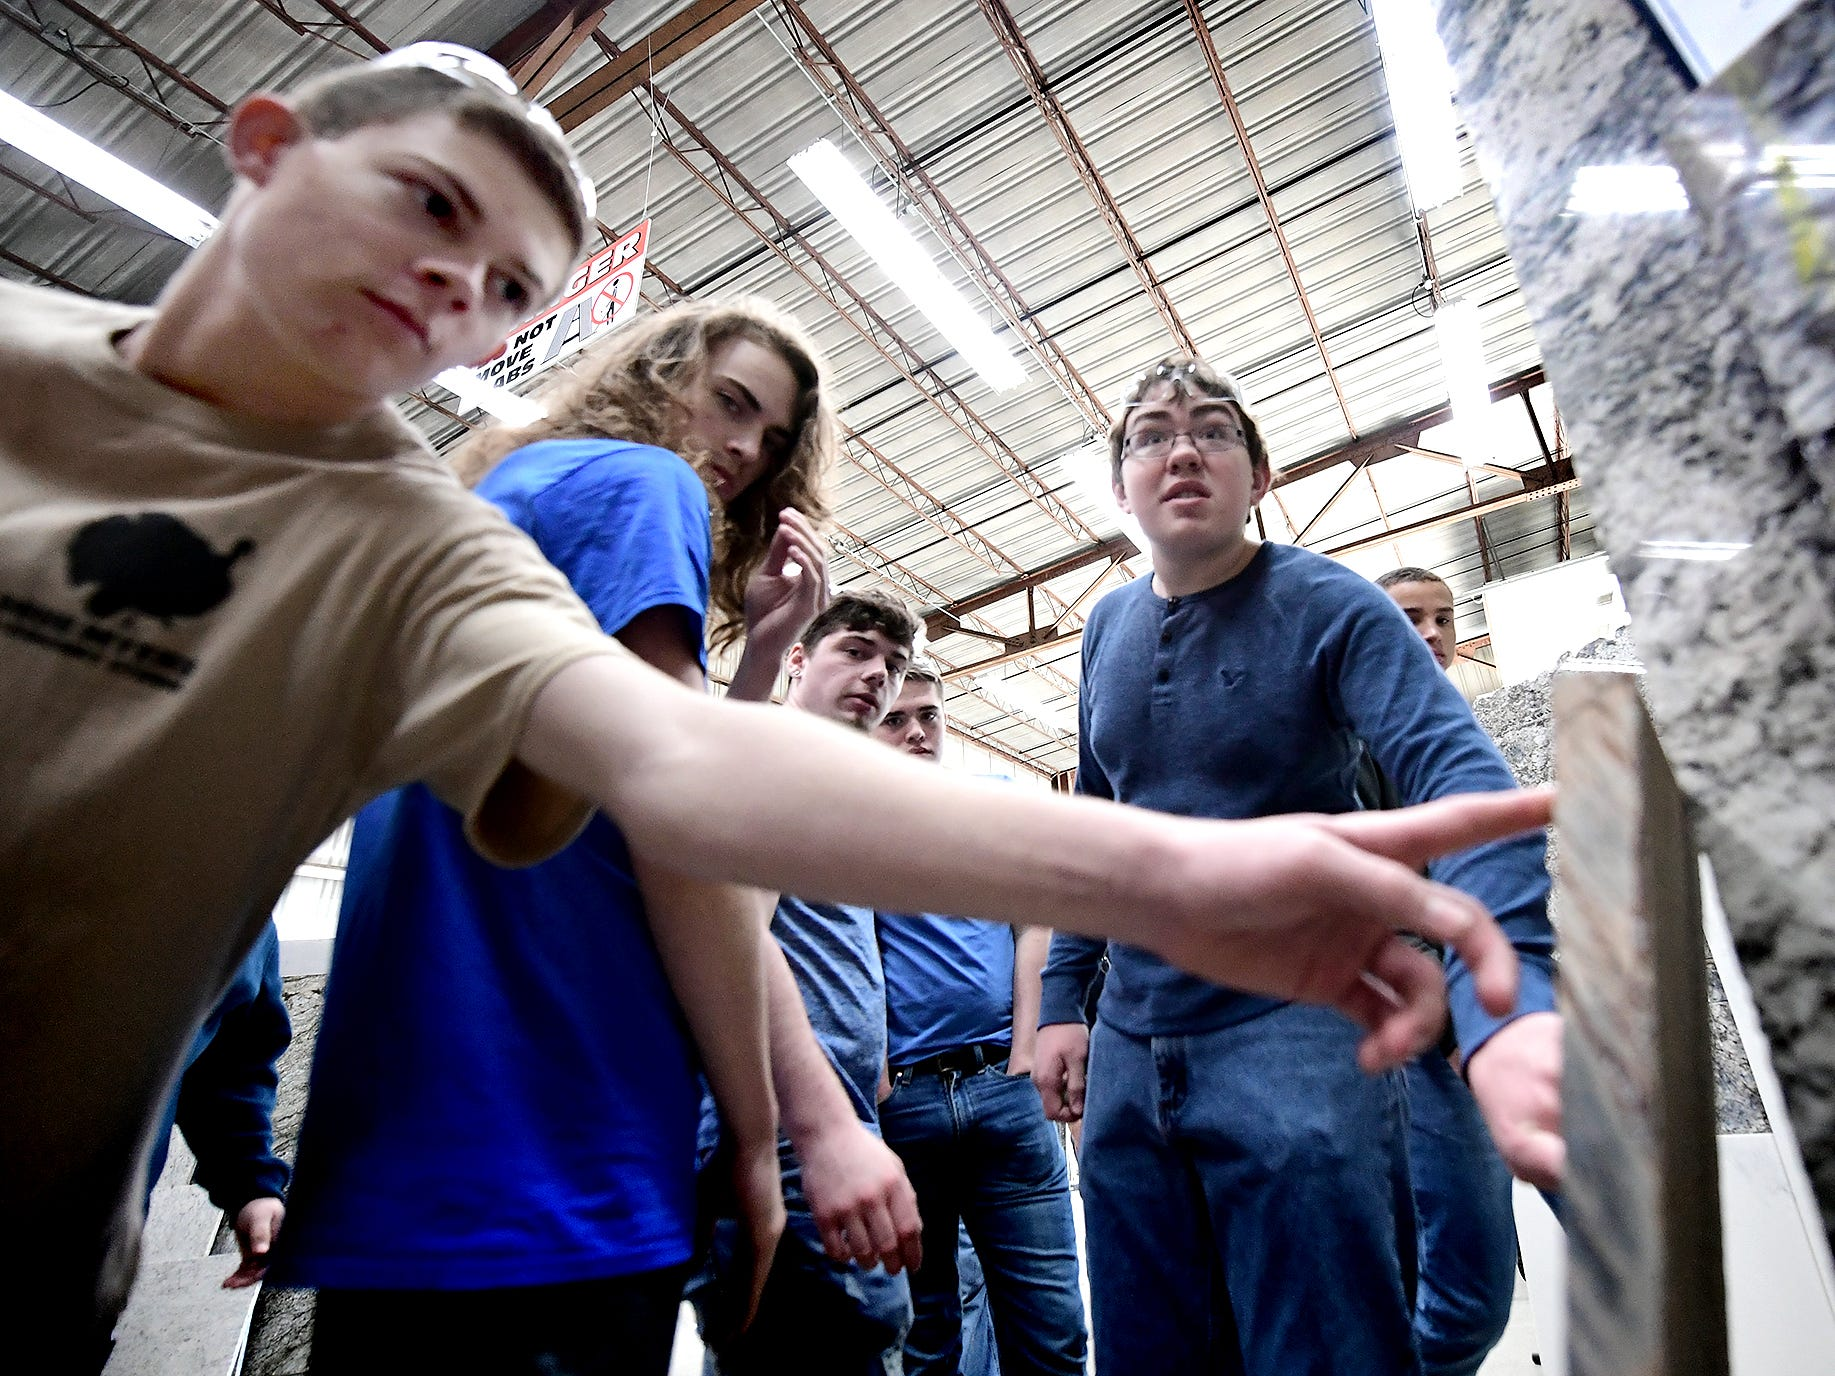 Spring Grove High School juniors, from left, Dylan Lawrence, Caleb Warren and Your Suburban junior Drew Davis touch a stone sample at Frank's Marble & Granite, in Red Lion, during the York Builders Association 2nd Annual Construction Career Day Monday, April 8, 2019. The goal of the program is to raise student-awareness about local career opportunities in the construction field. Association members host the students. The association has planned similar events at various companies through April 17. Nine area high schools are participating in the program, according to the builders association. Bill Kalina photo